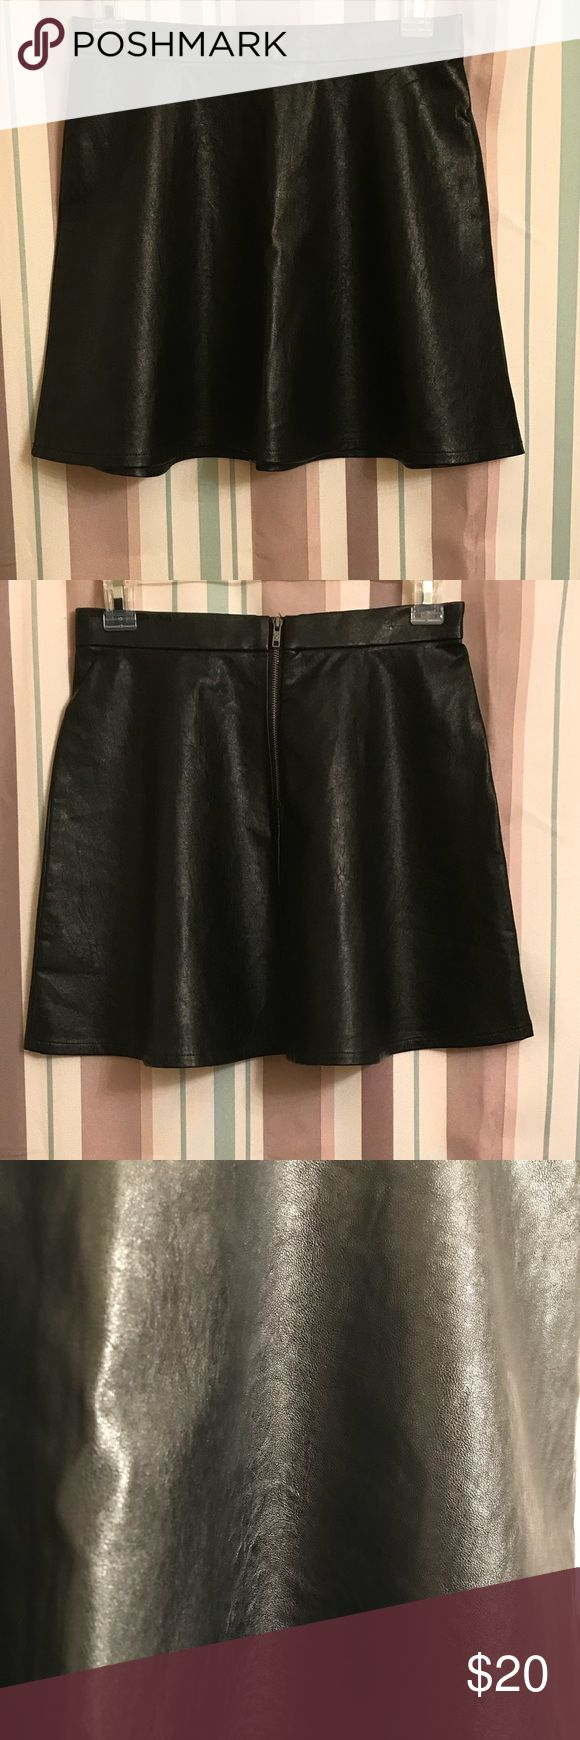 ✨ American Eagle Outfitters 💜 Vegan leather skater skirt. Cute for winter to dress up with cute thigh high boots, and a sweater. Please see pics for details American Eagle Outfitters Skirts Circle & Skater